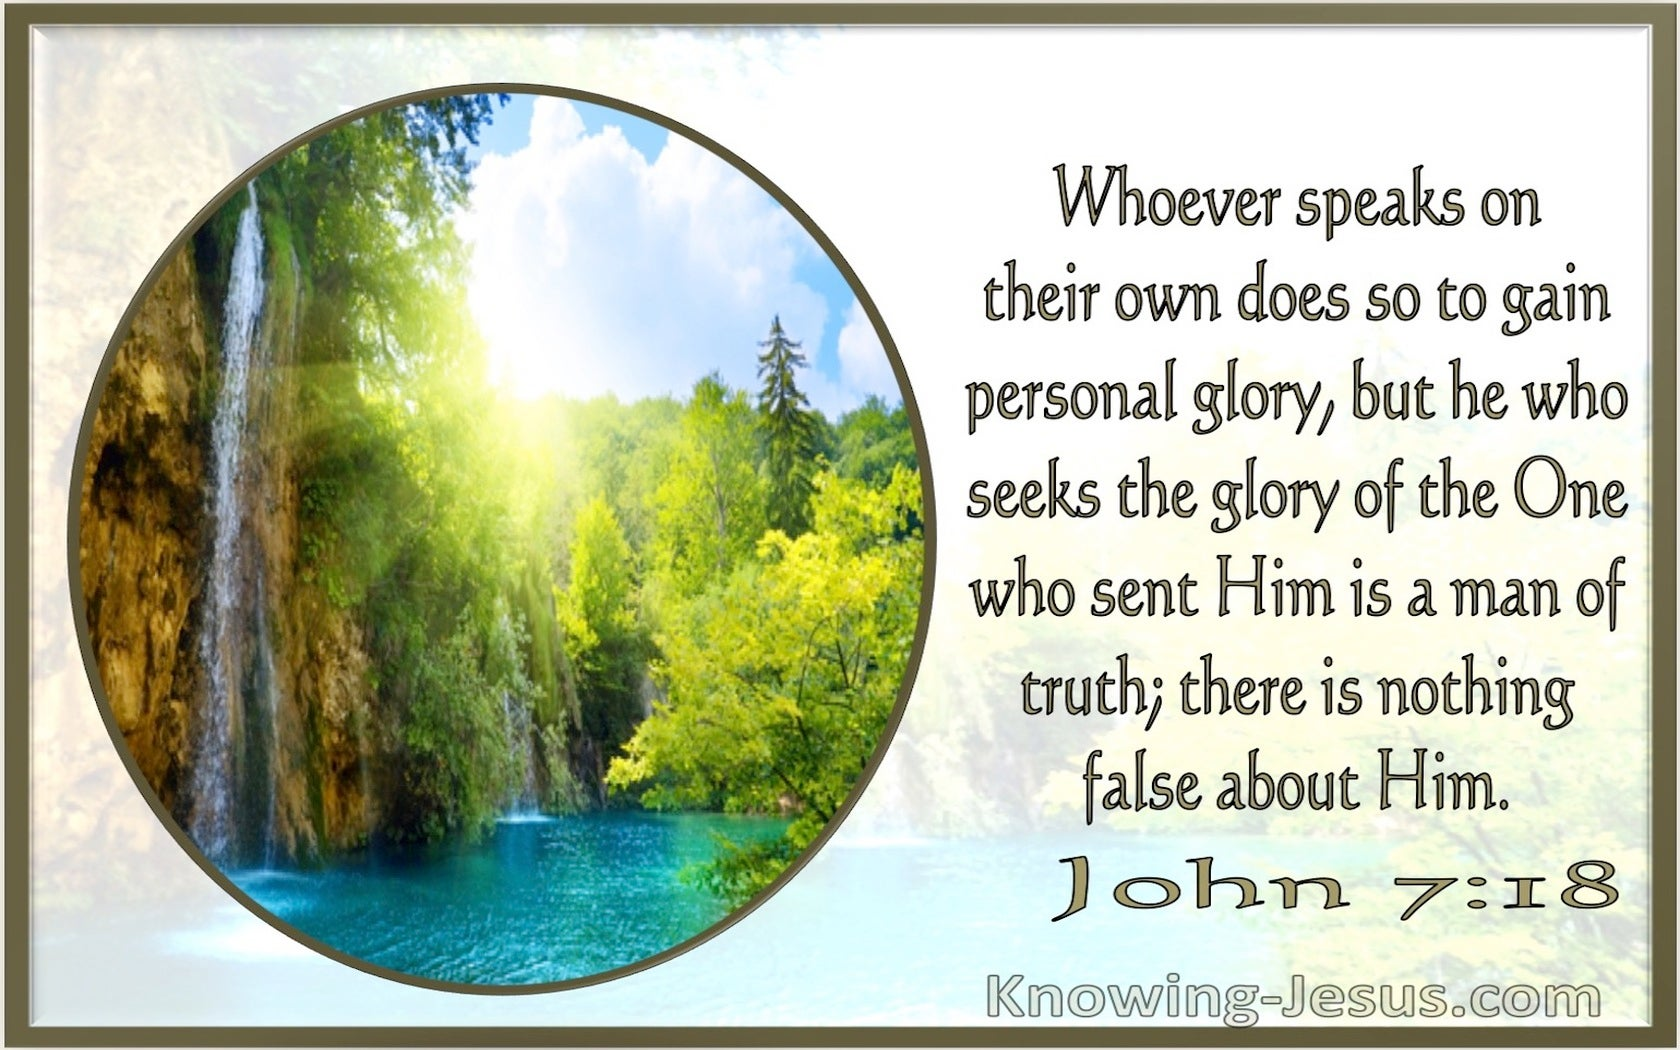 John 7:18 He Is A Man Of Truth For There Is Nothing False In Him (windows)11:26